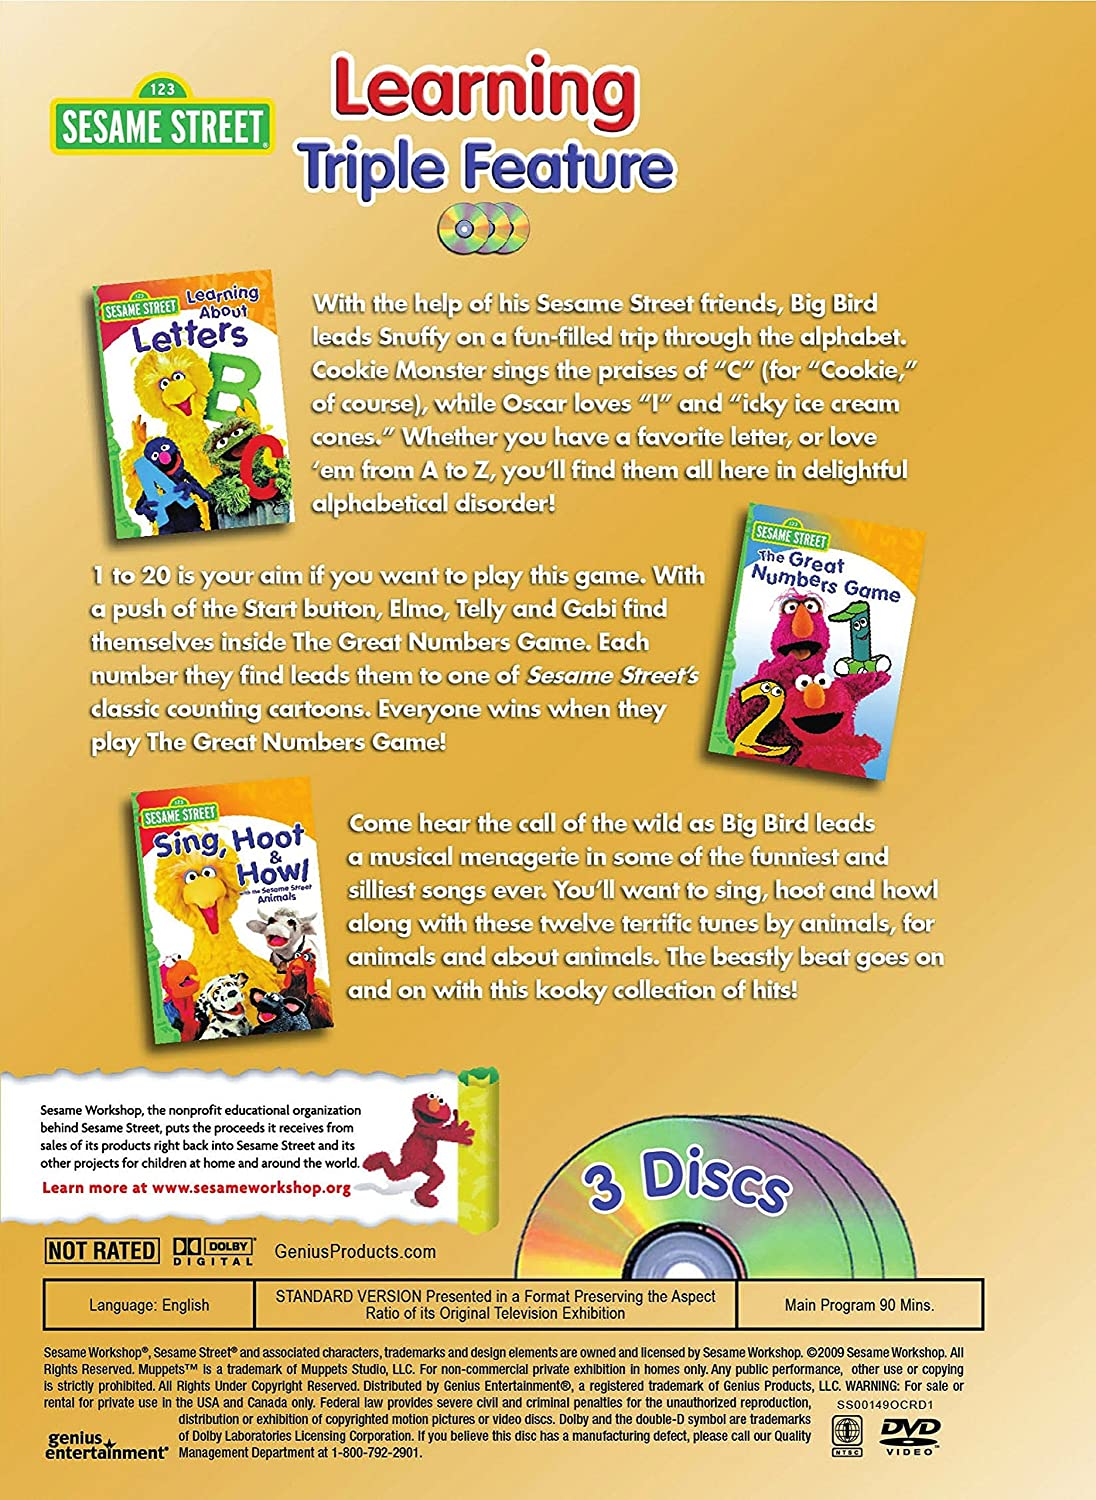 amazon com sesame street learning triple feature learning about